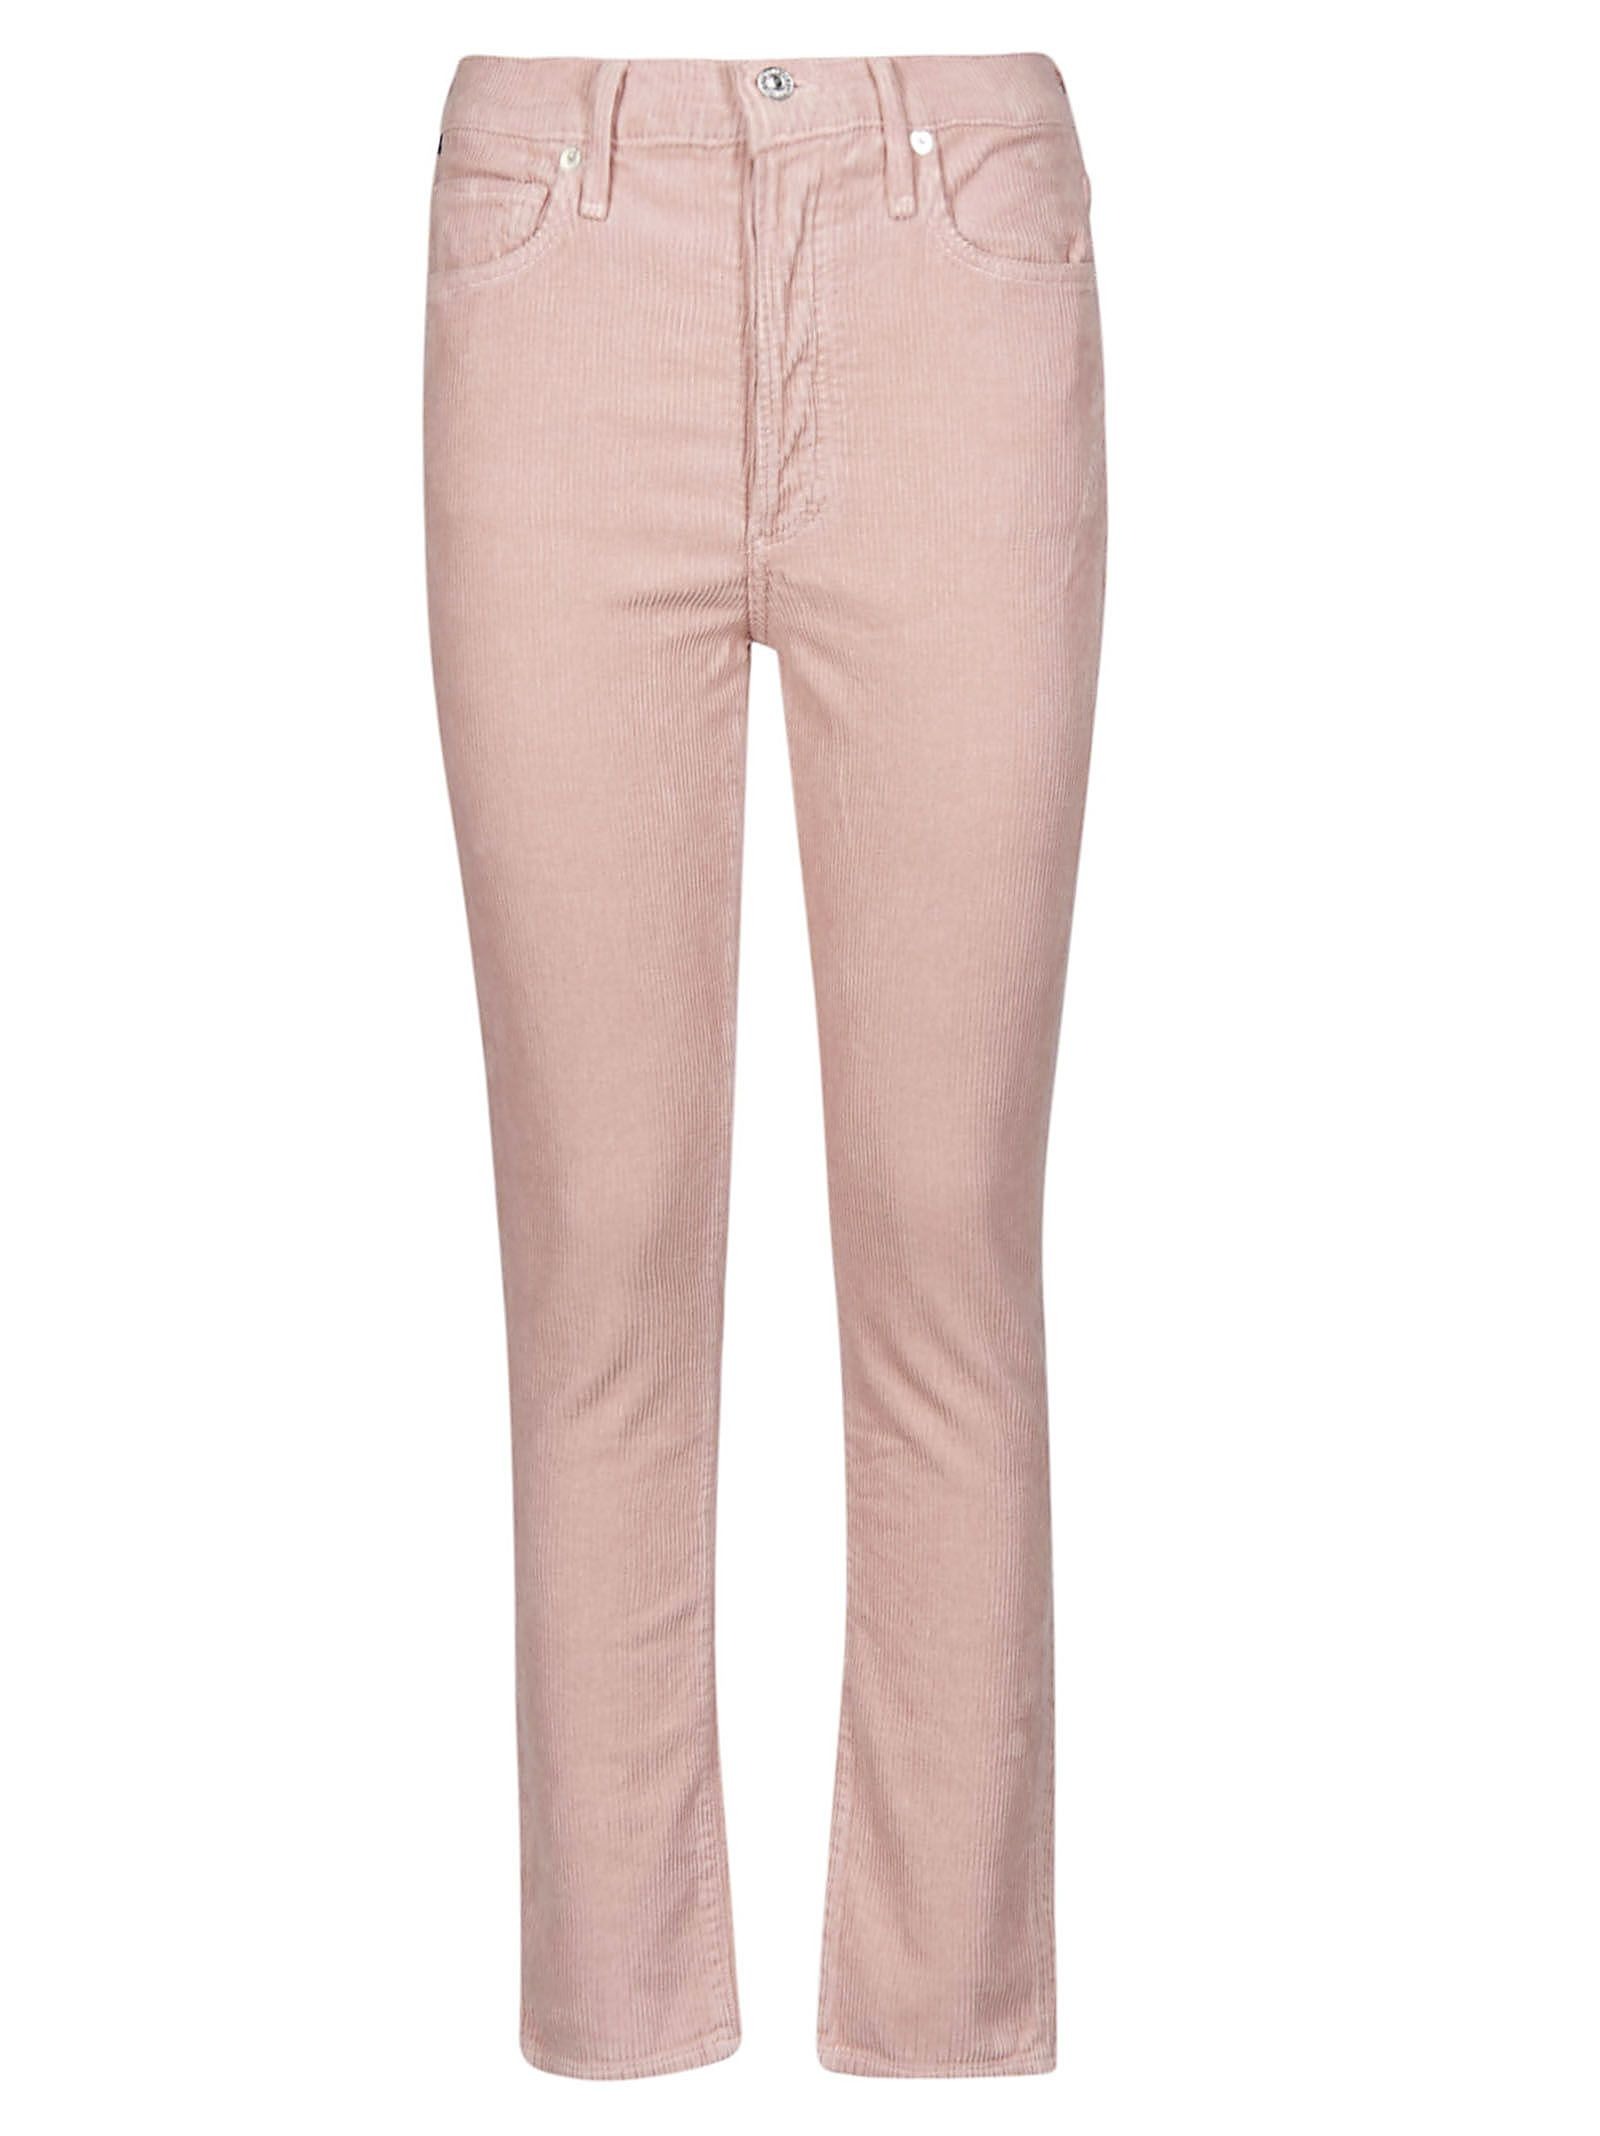 Citizens Of Humanity Olivia Slim Fit Trousers